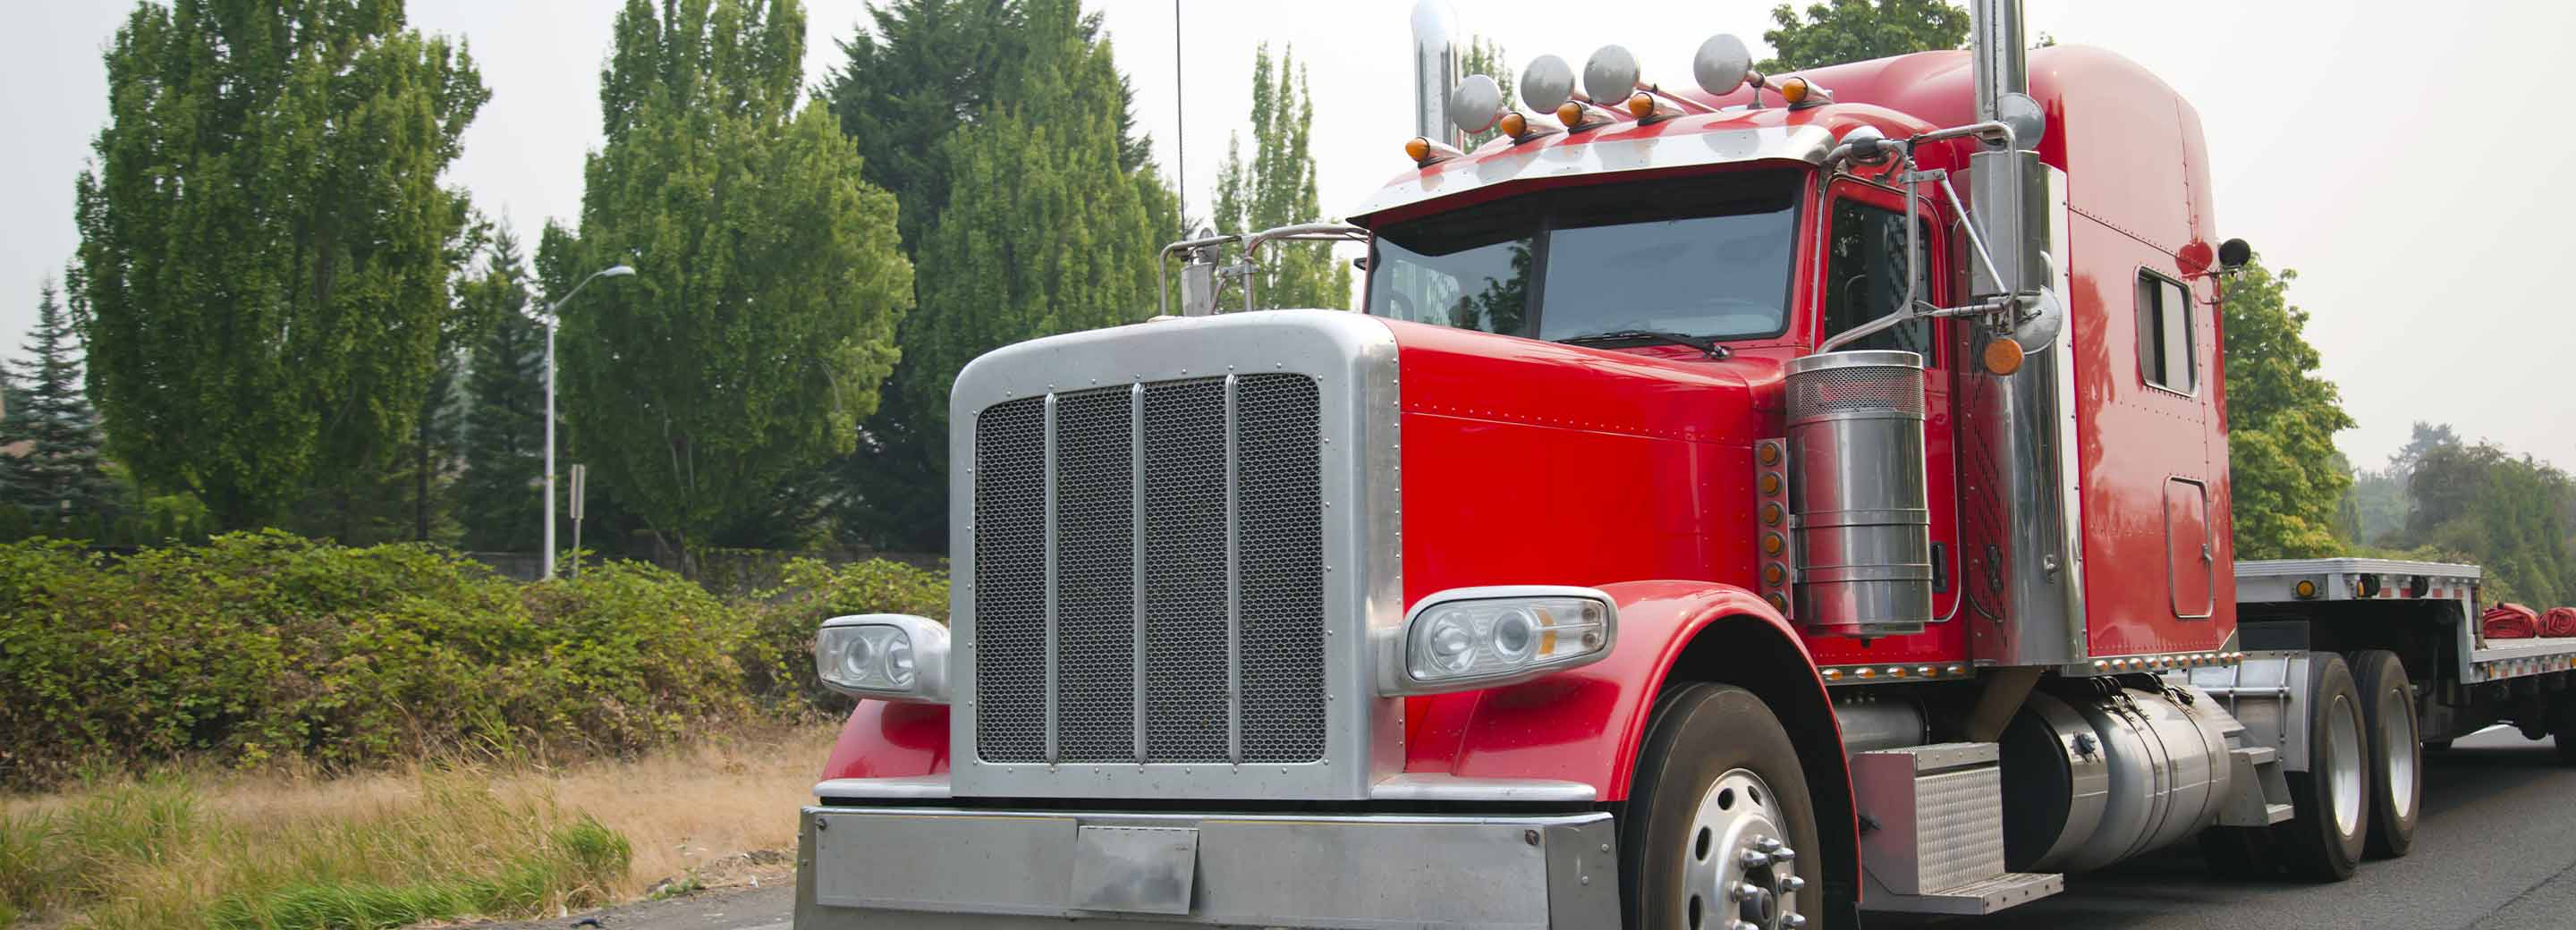 Red Cab Tractor Trailer with Flat bed